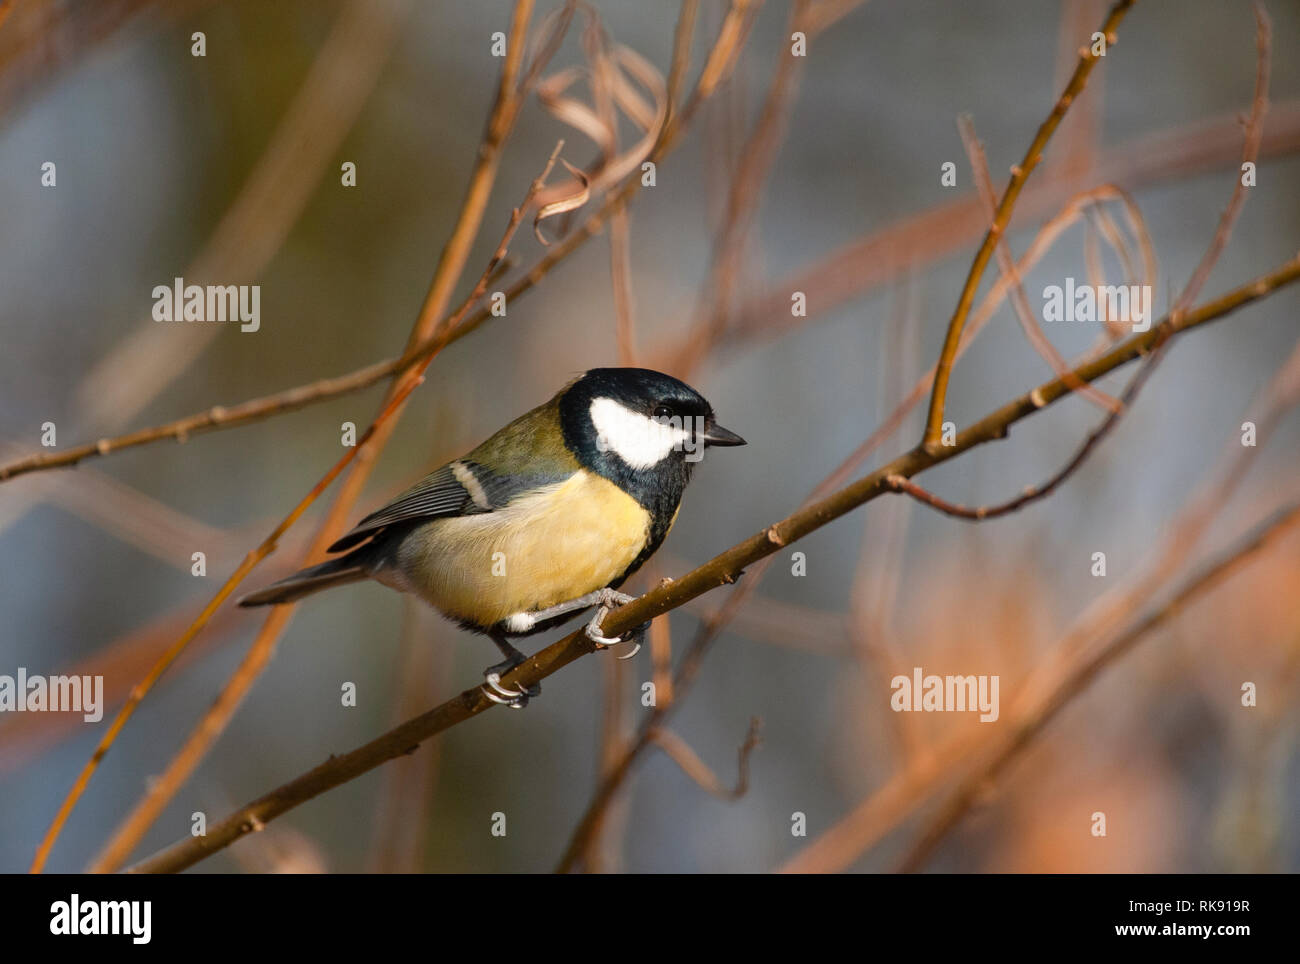 Great Tit, Parus major, perched on branch, Hampstead Heath, London, United Kingdom Stock Photo